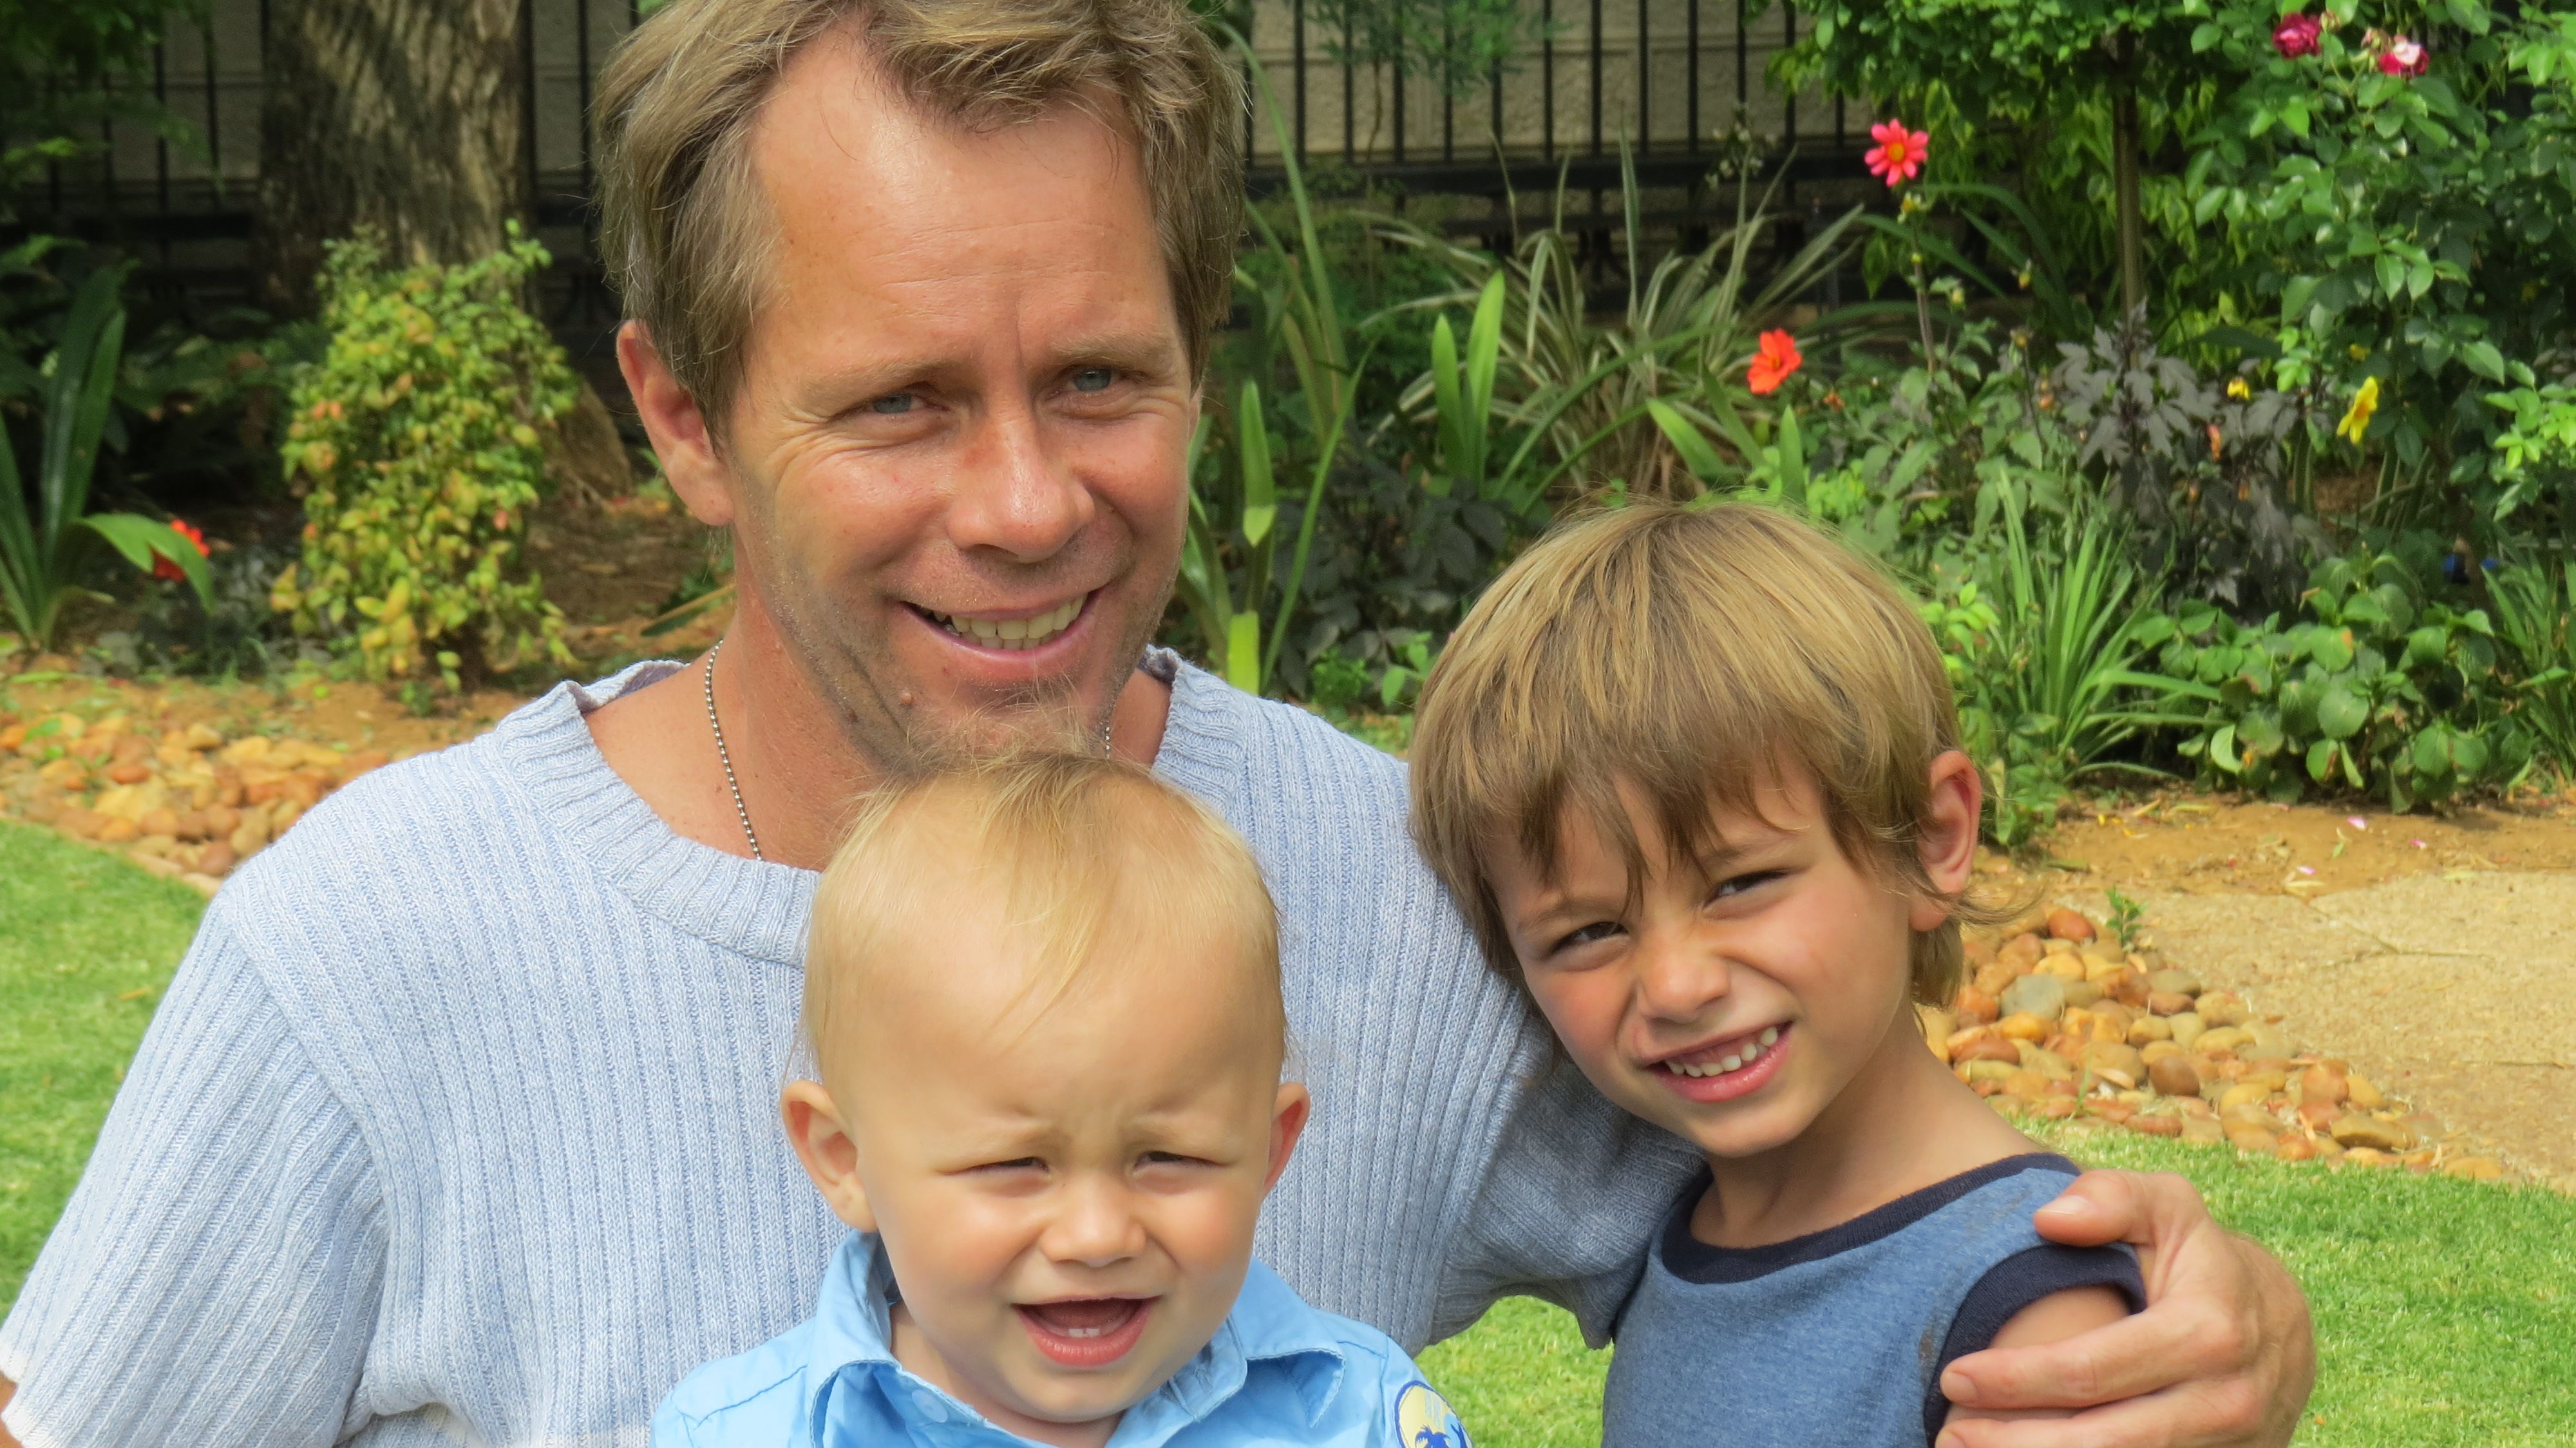 Dad with his boys, Joshua (5) and Luke (18 months)